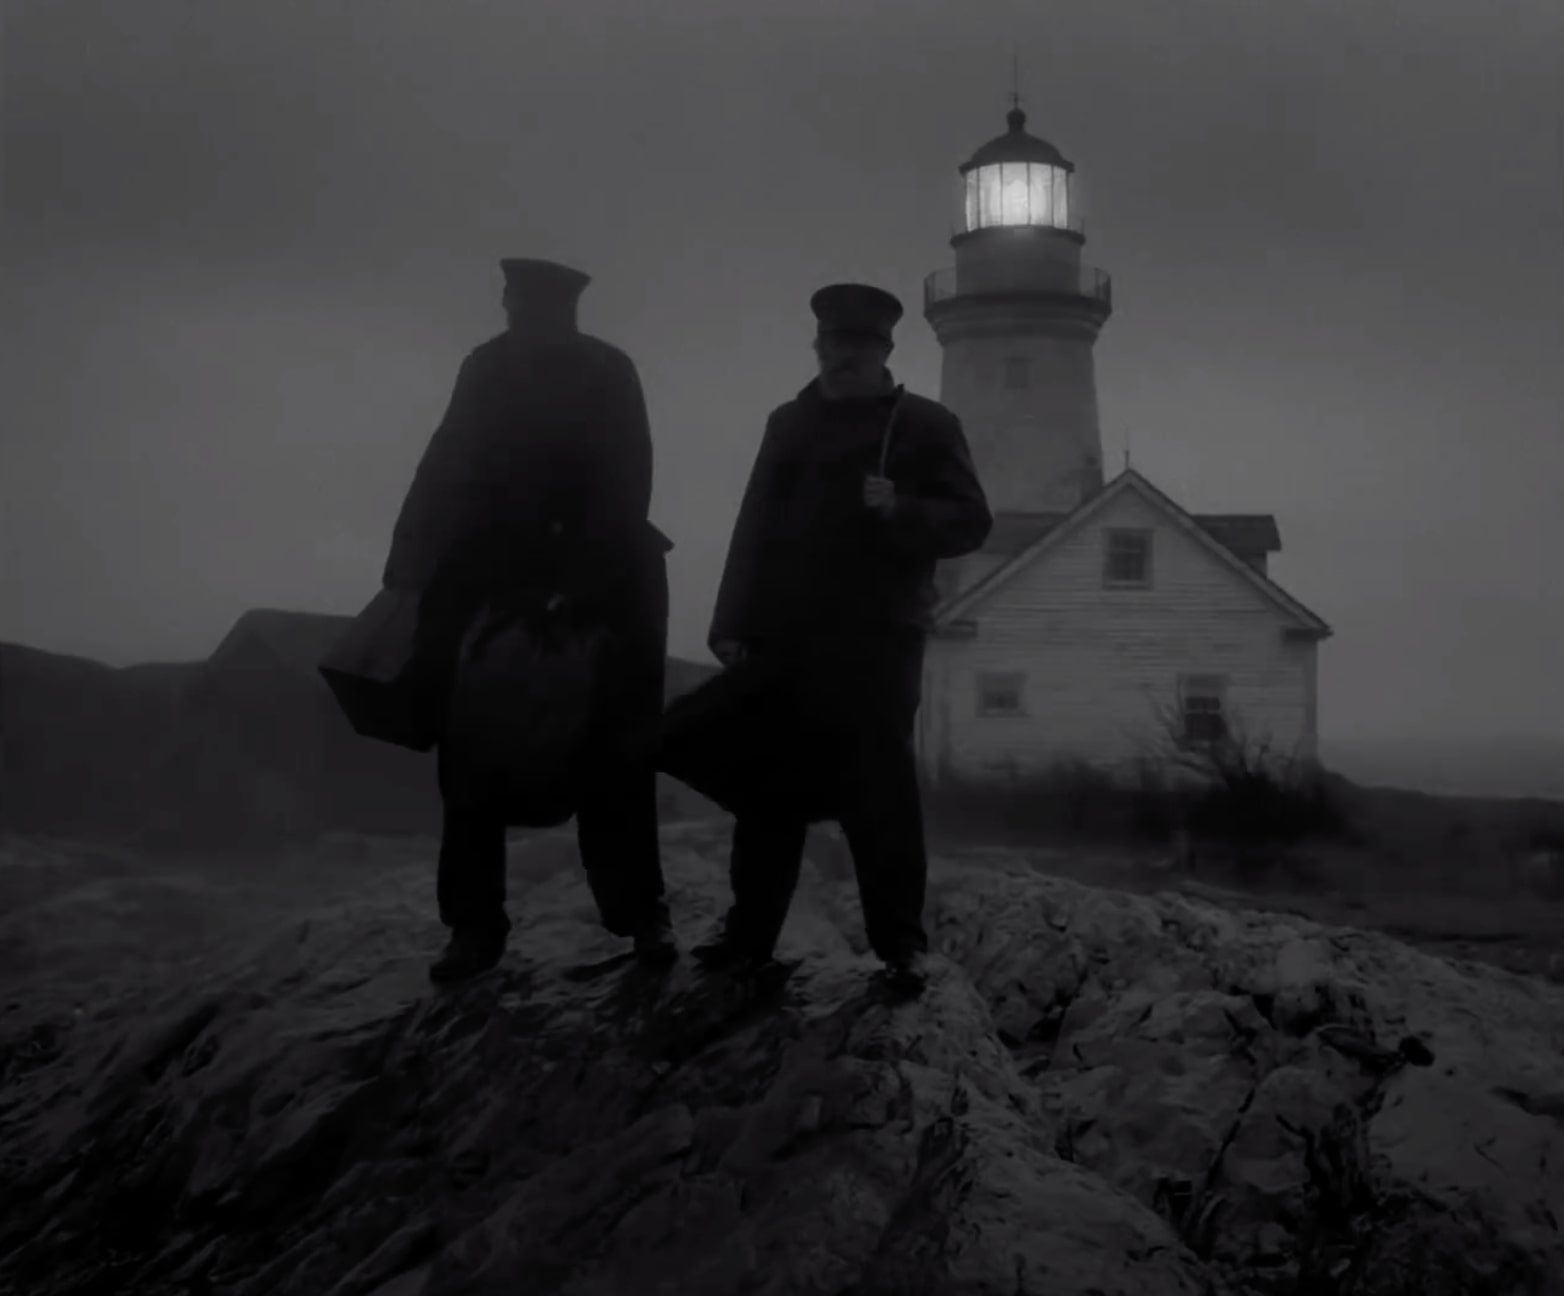 The Lighthouse - 5